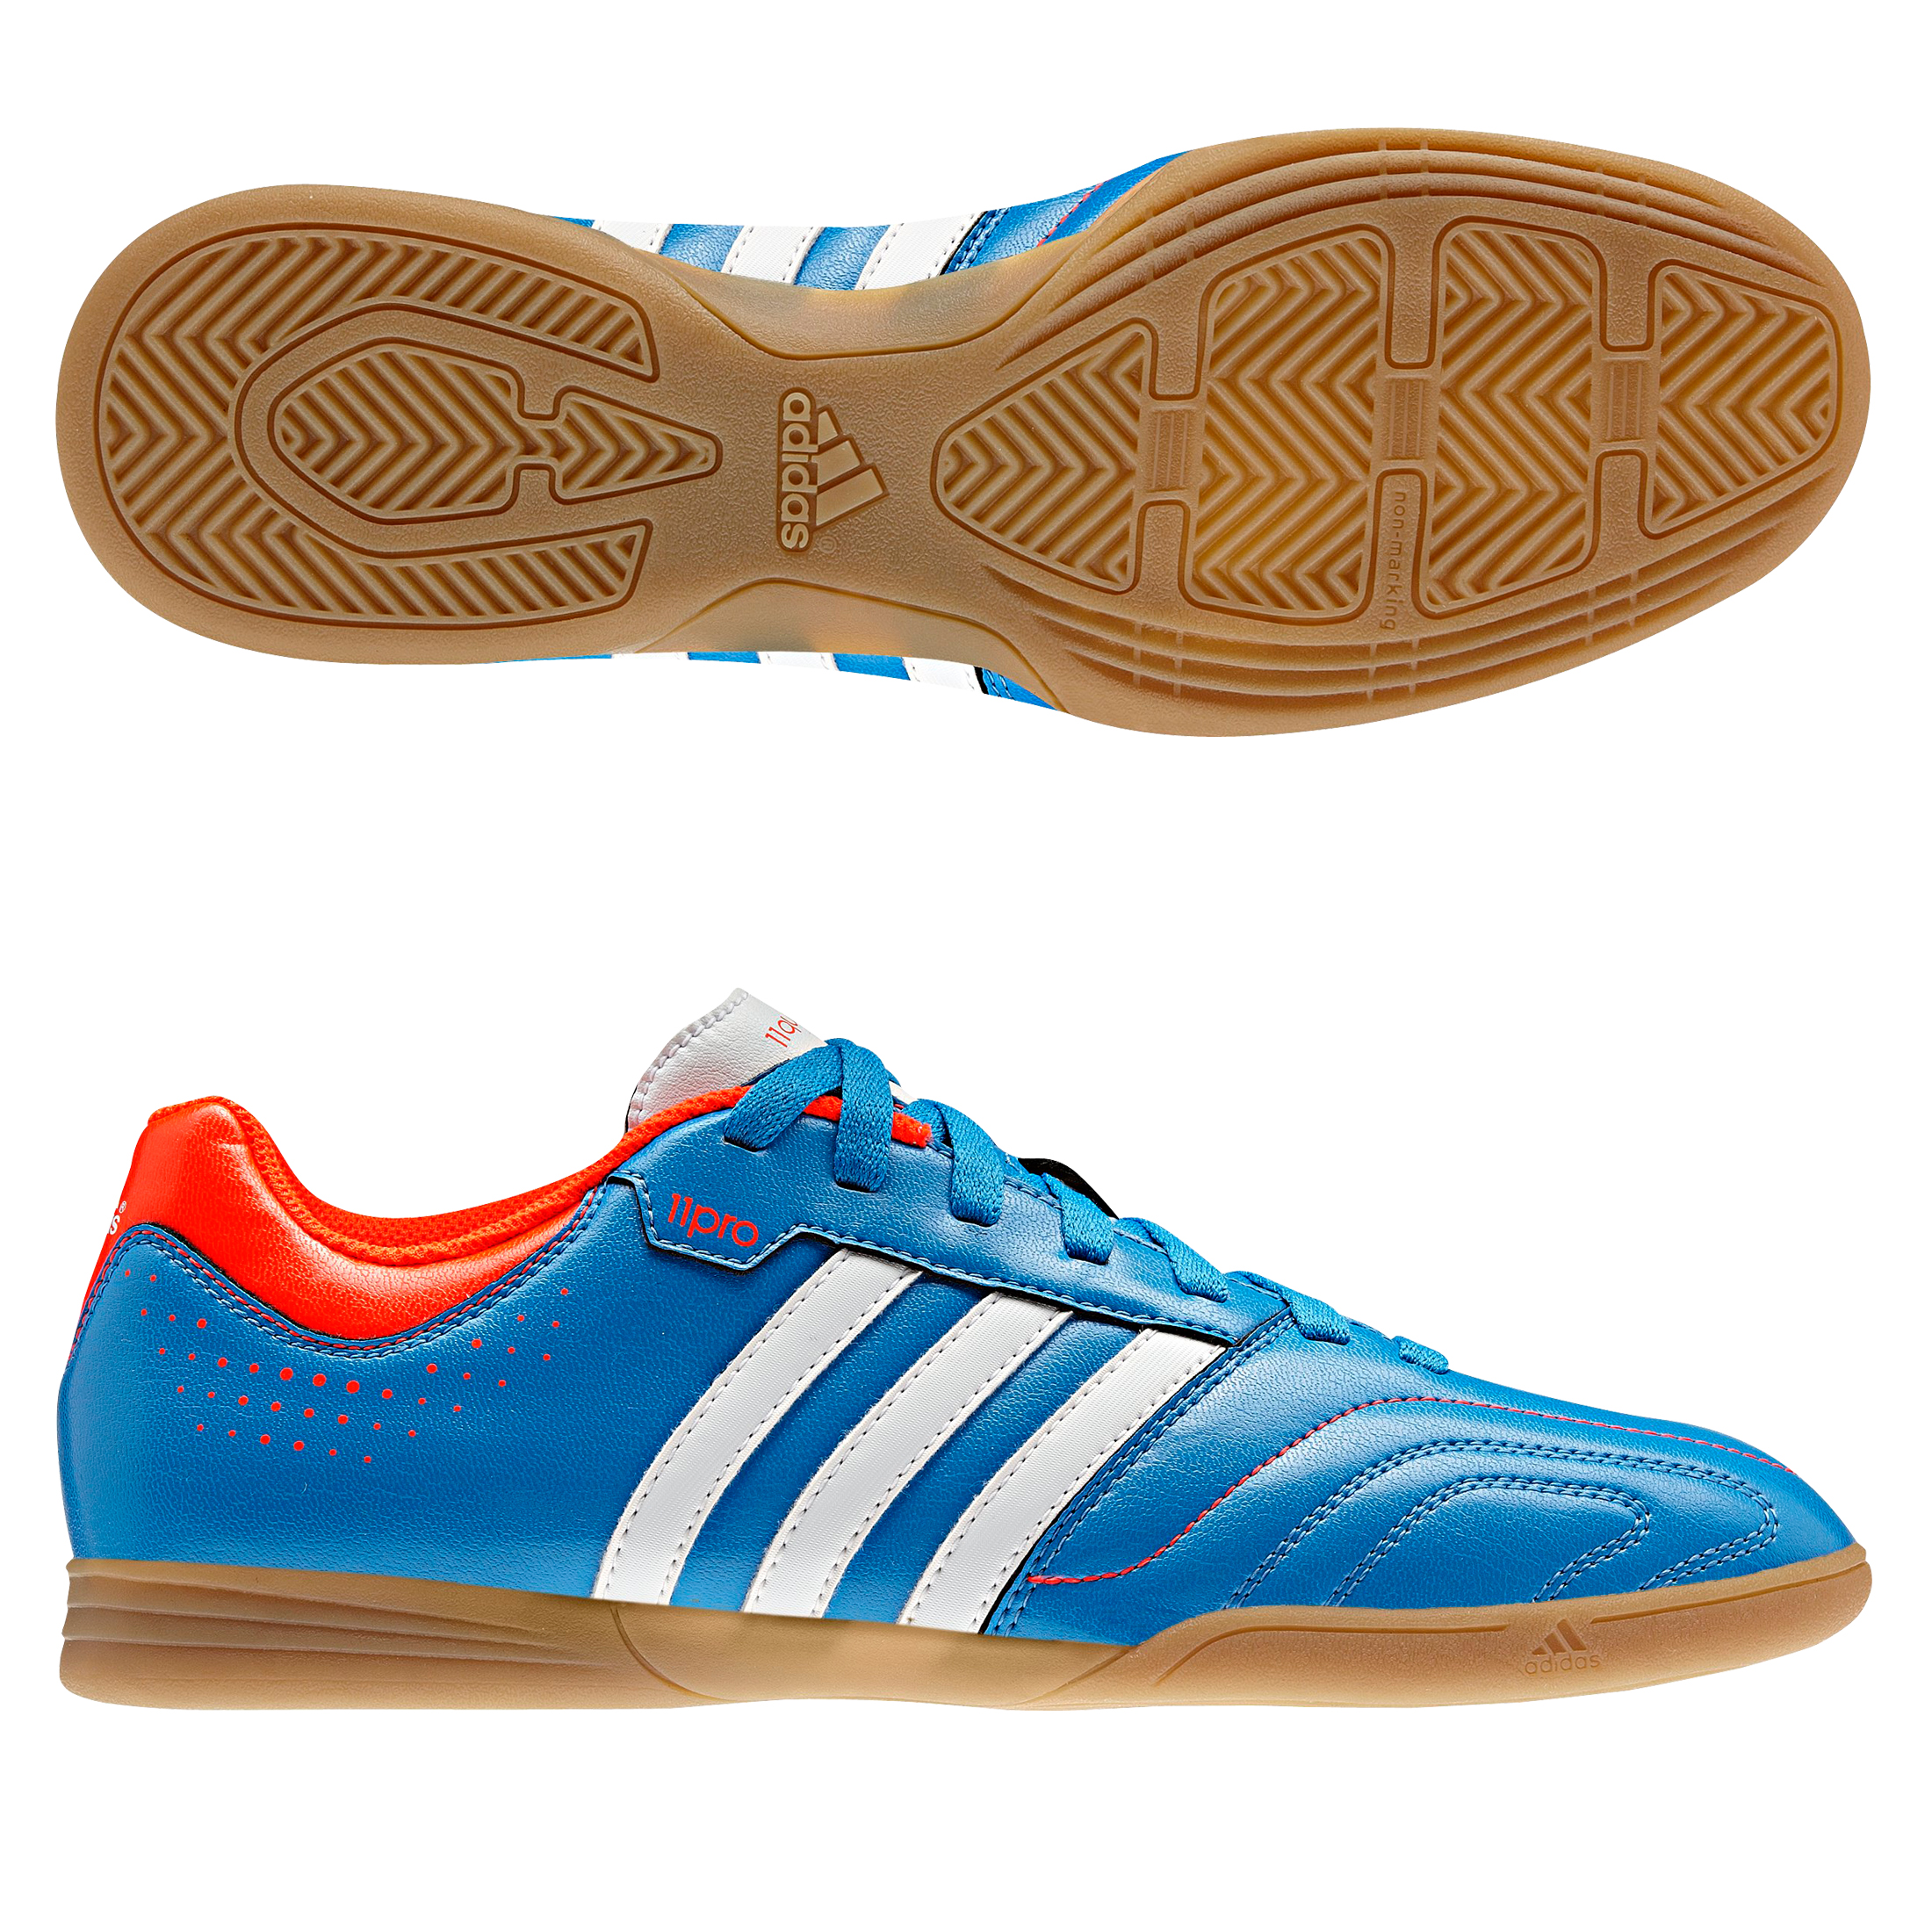 Adidas 11Questra Indoor Trainers - Bright Blue/Running White/Infrared